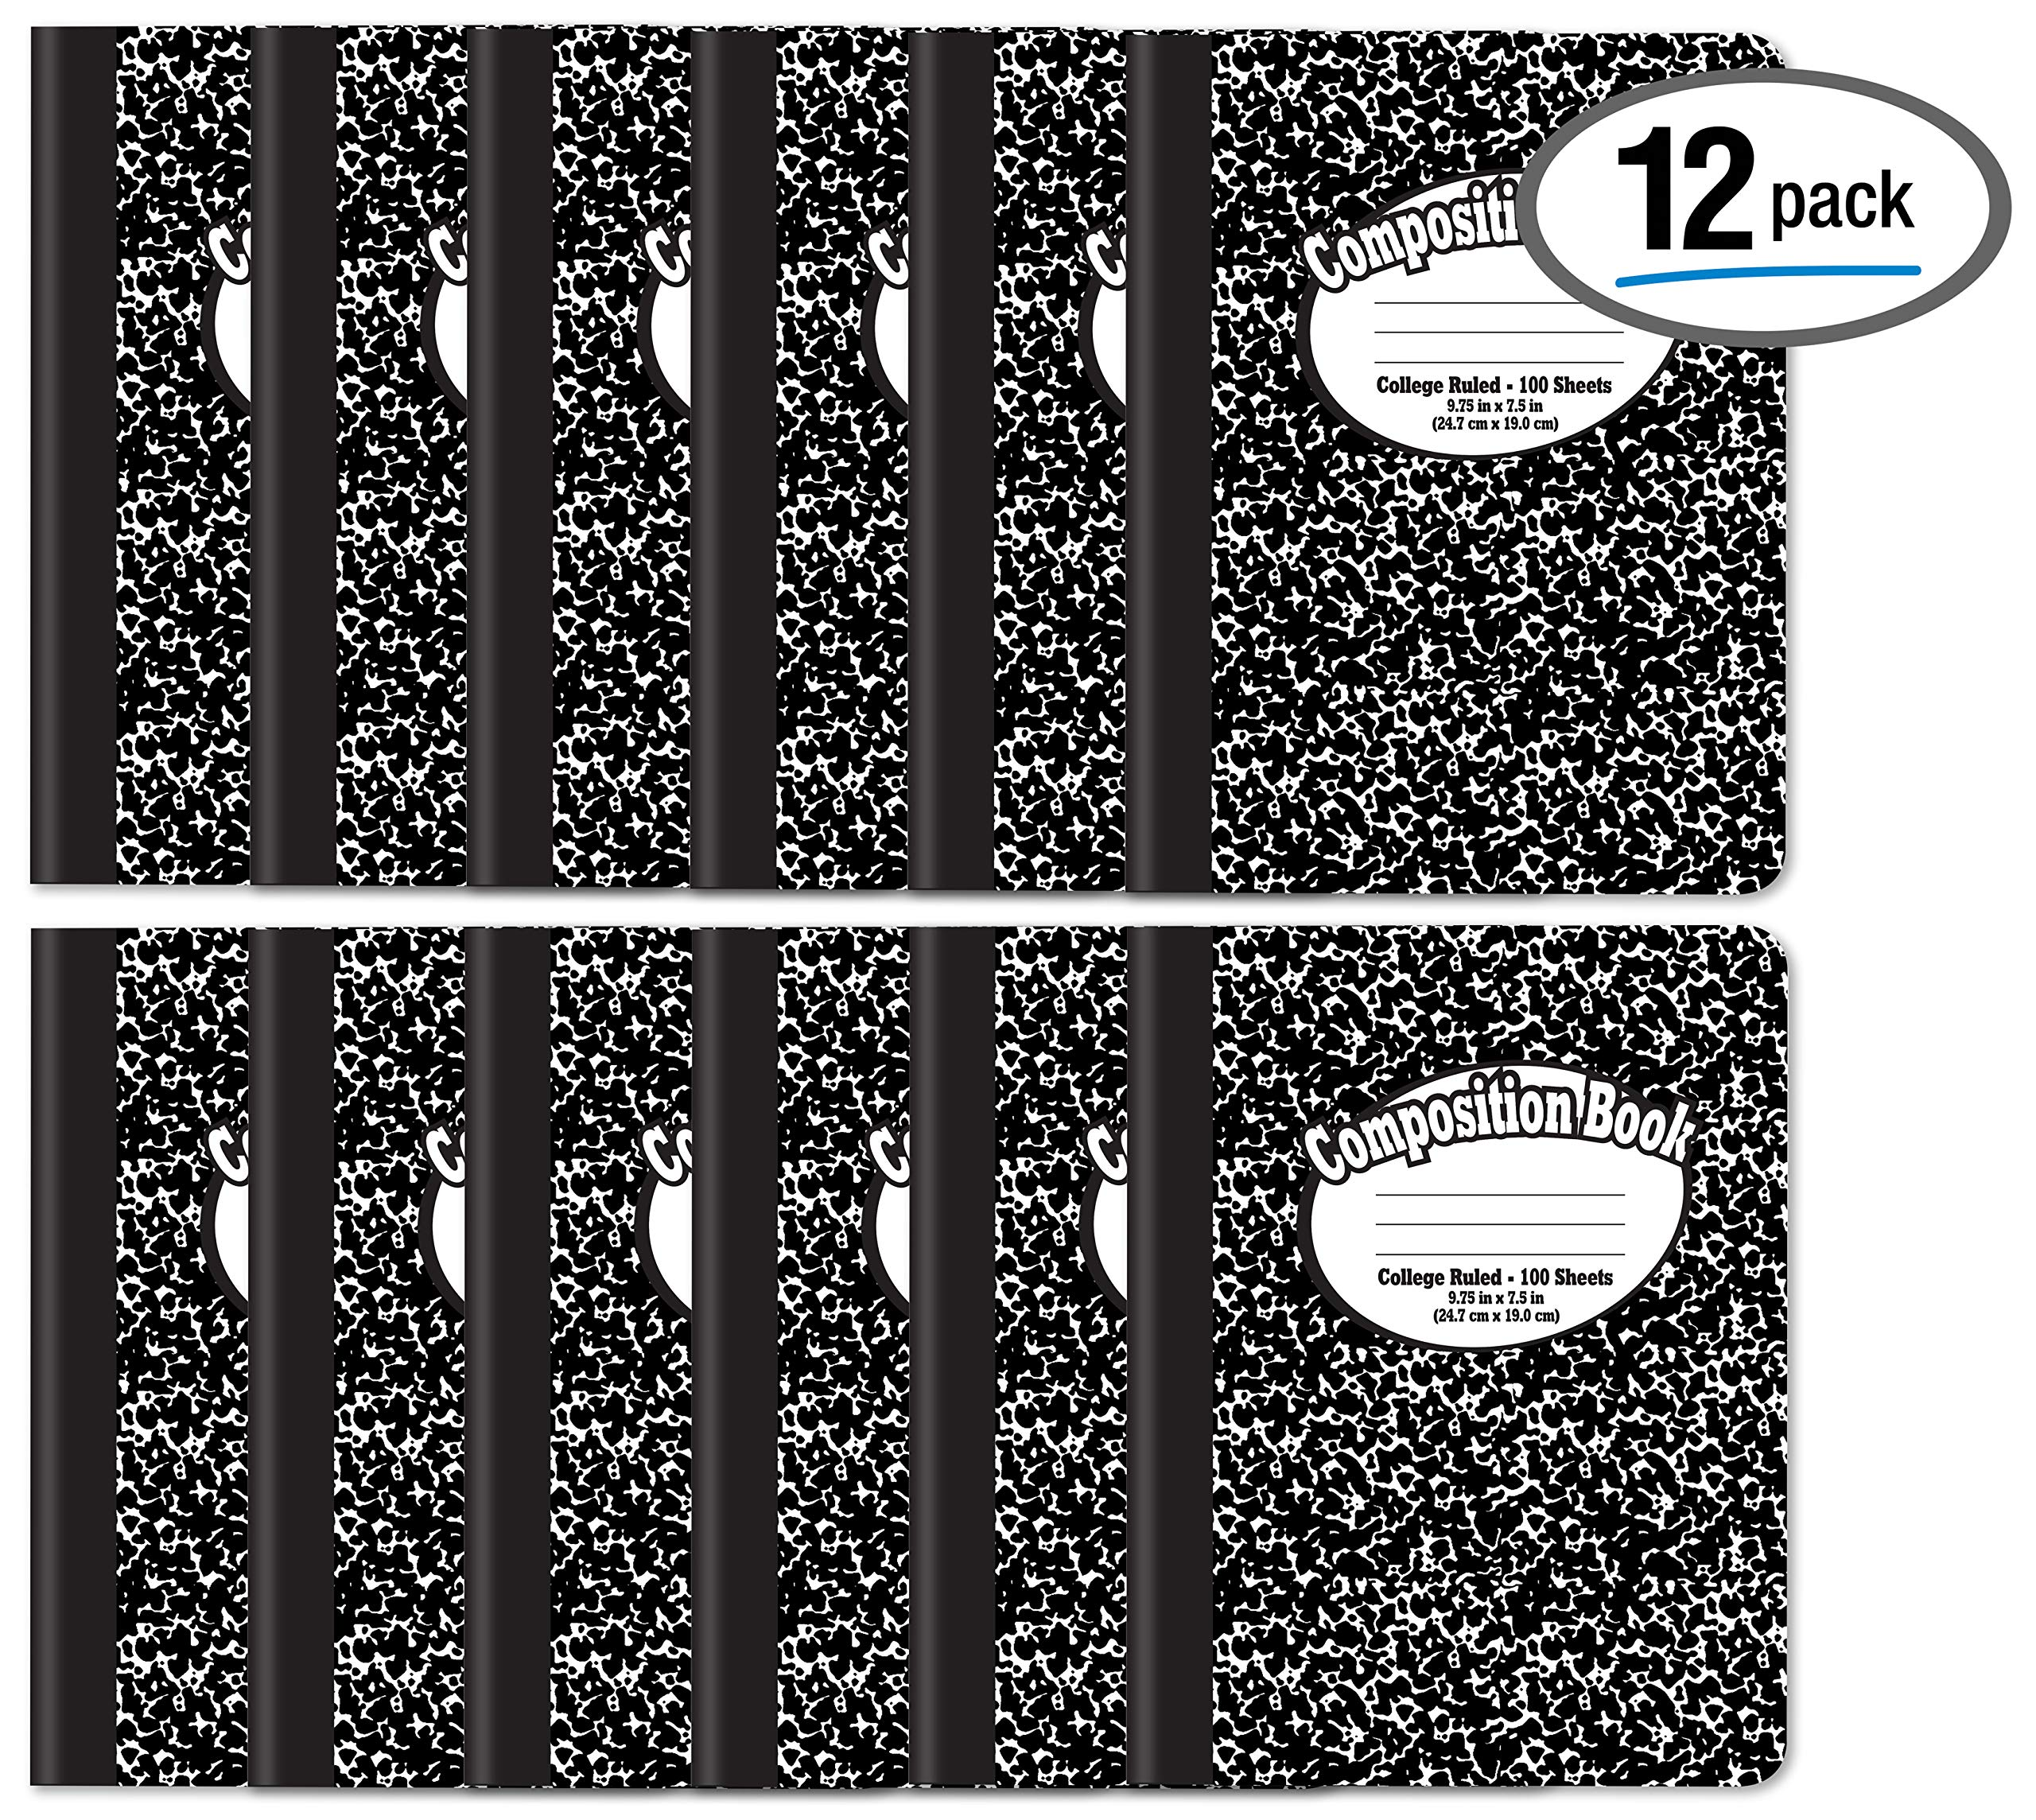 Composition Book Notebook - Hardcover, College Ruled (9/32-inch), 100 Sheet, One Subject, 9.75'' x 7.5'', Black Cover-12 Pack